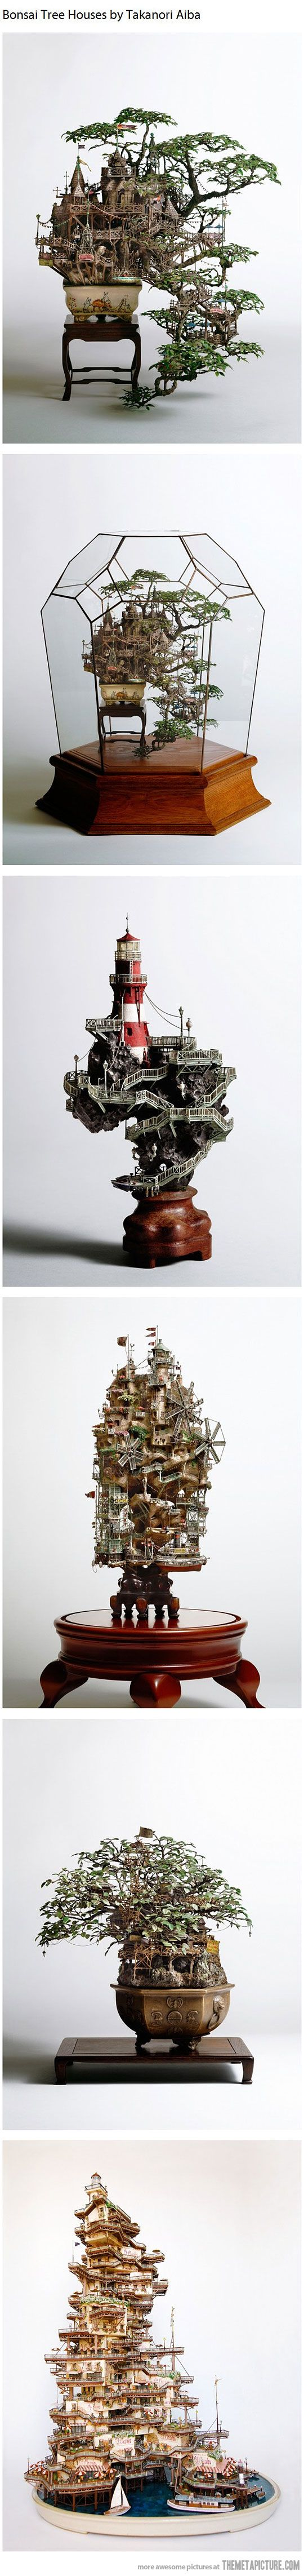 Bonsai buildings = awesomeness. The last one is epic.